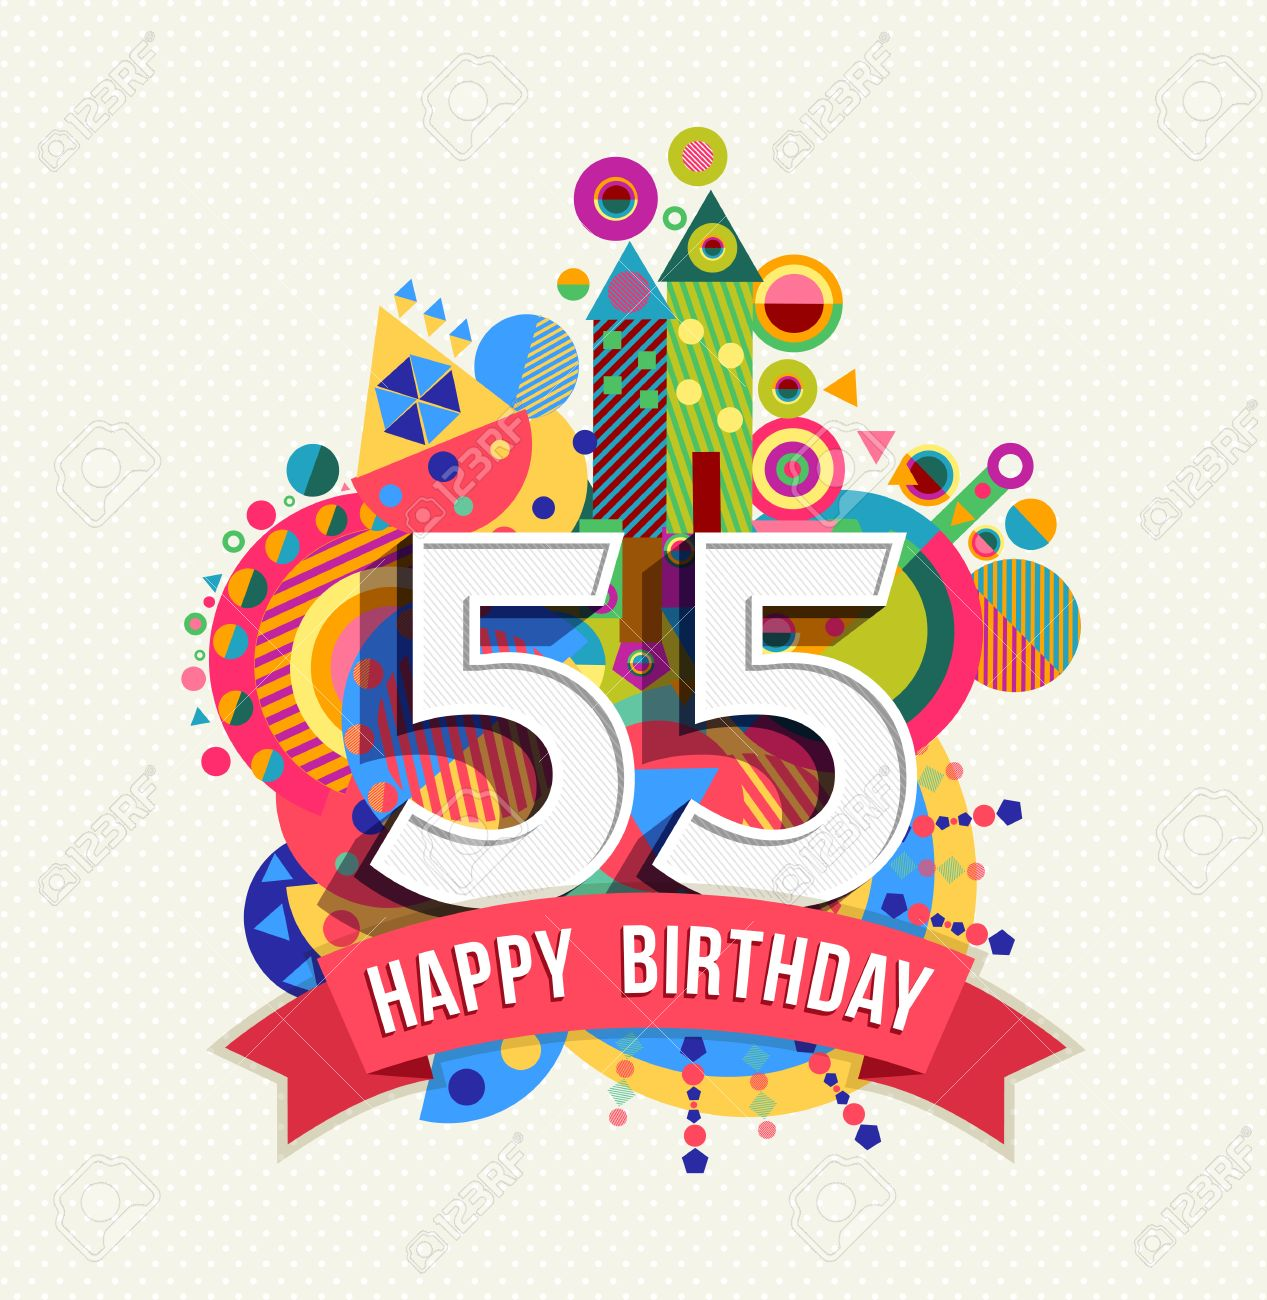 Happy Birthday fifty five 55 year, fun celebration greeting card with  number, text label